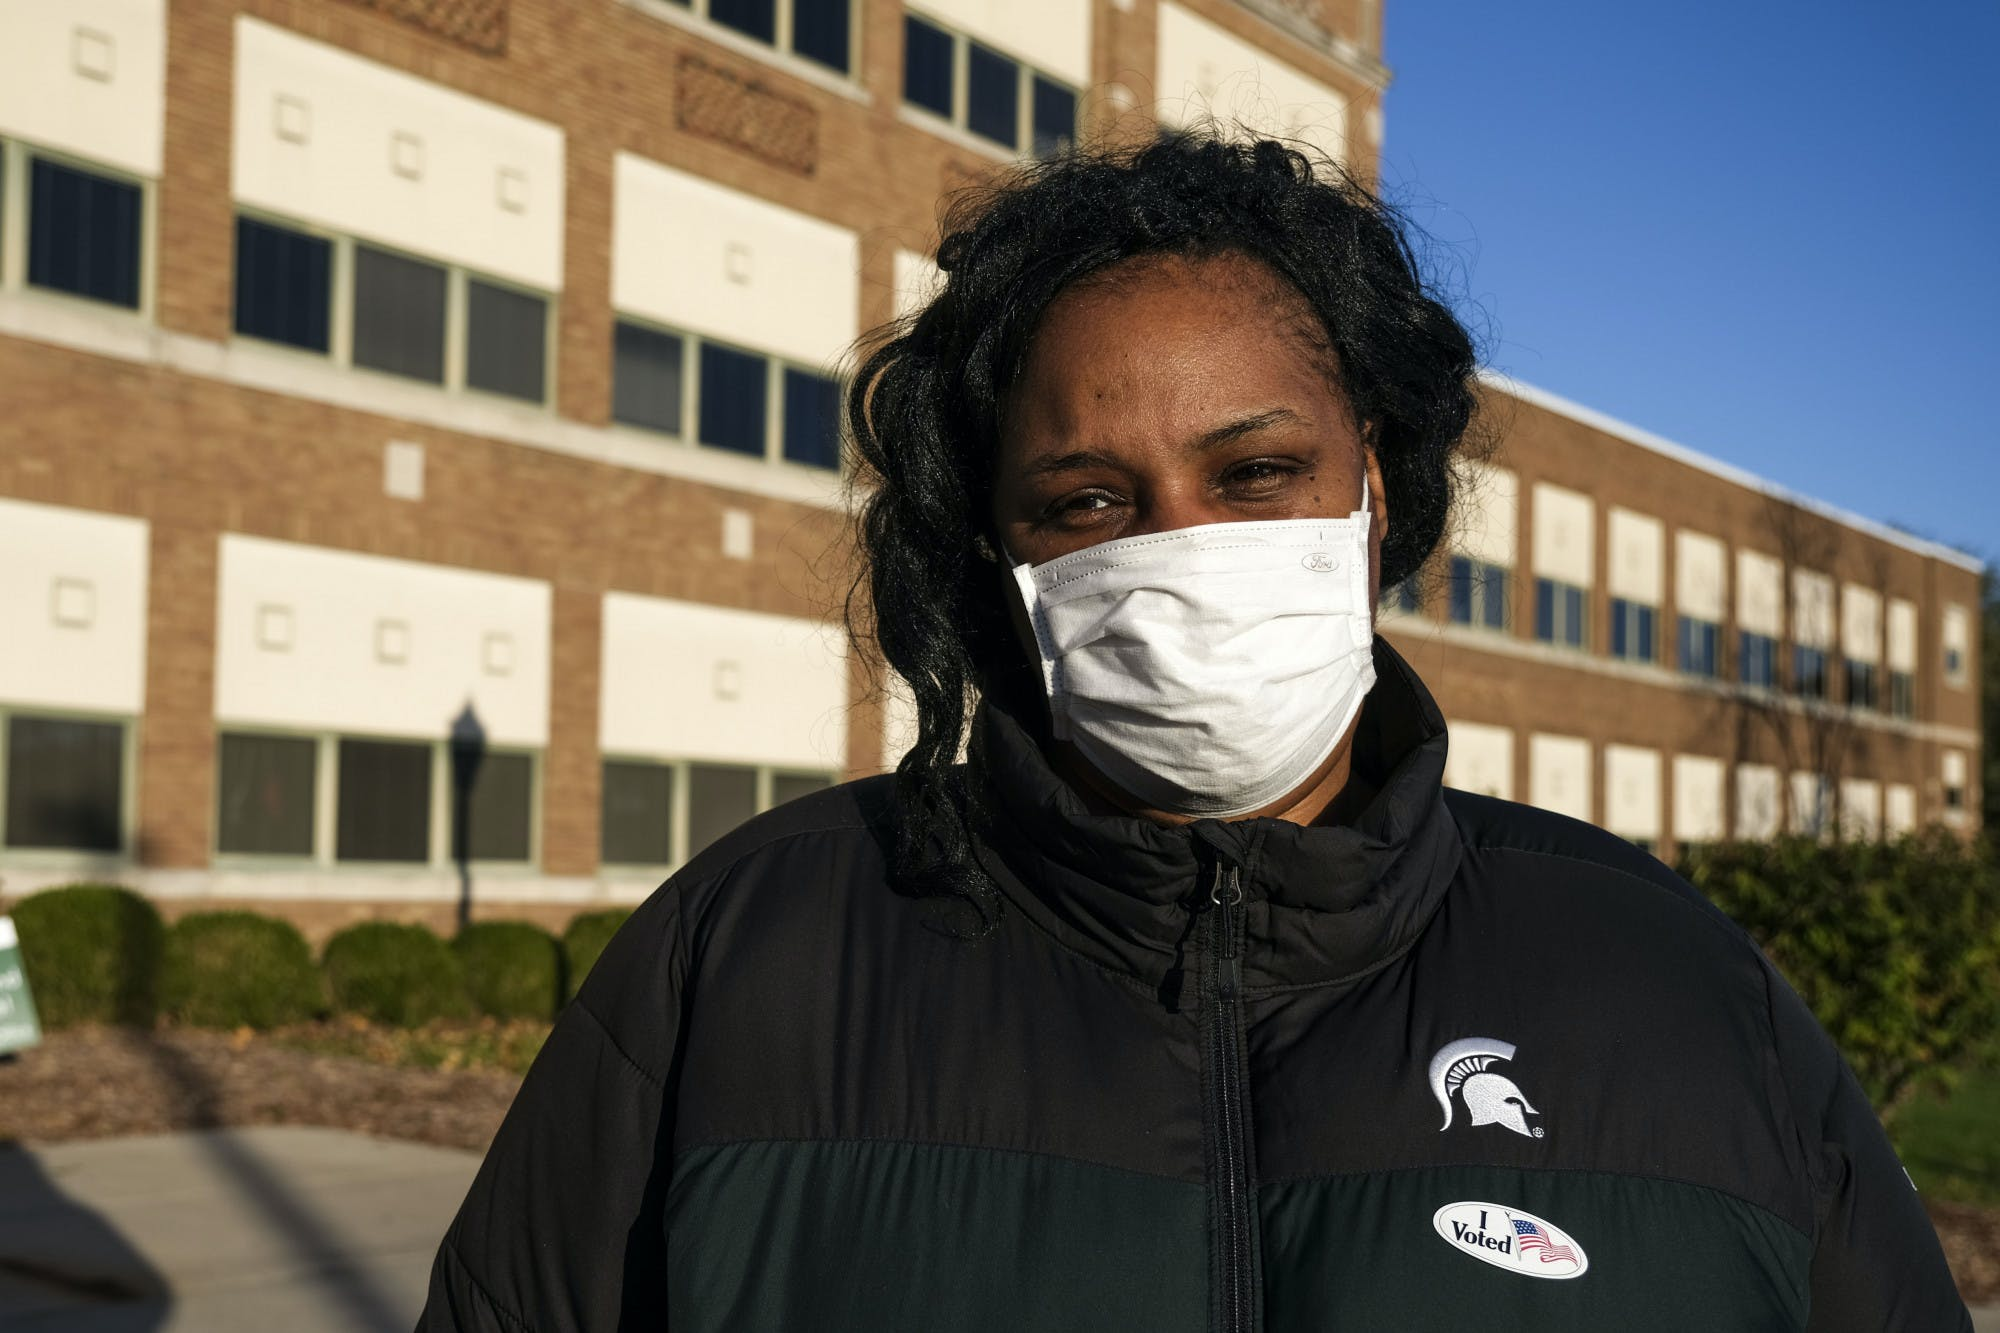 A person wearing a face mask and an 'I voted' sticker poses for a portrait.